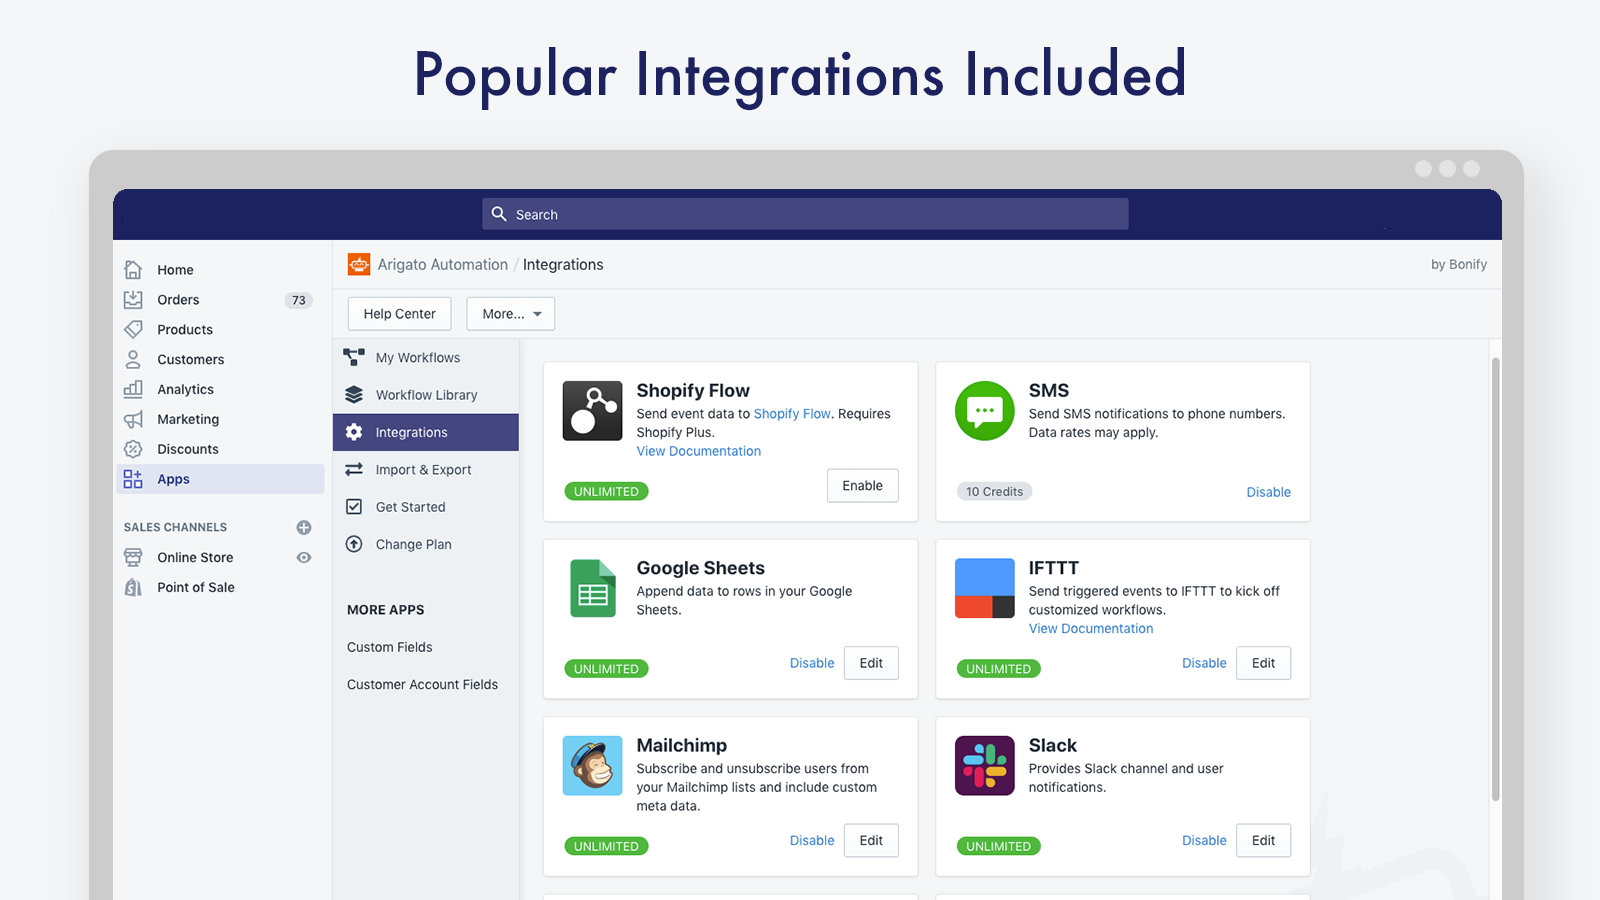 Popular integrations included free of charge